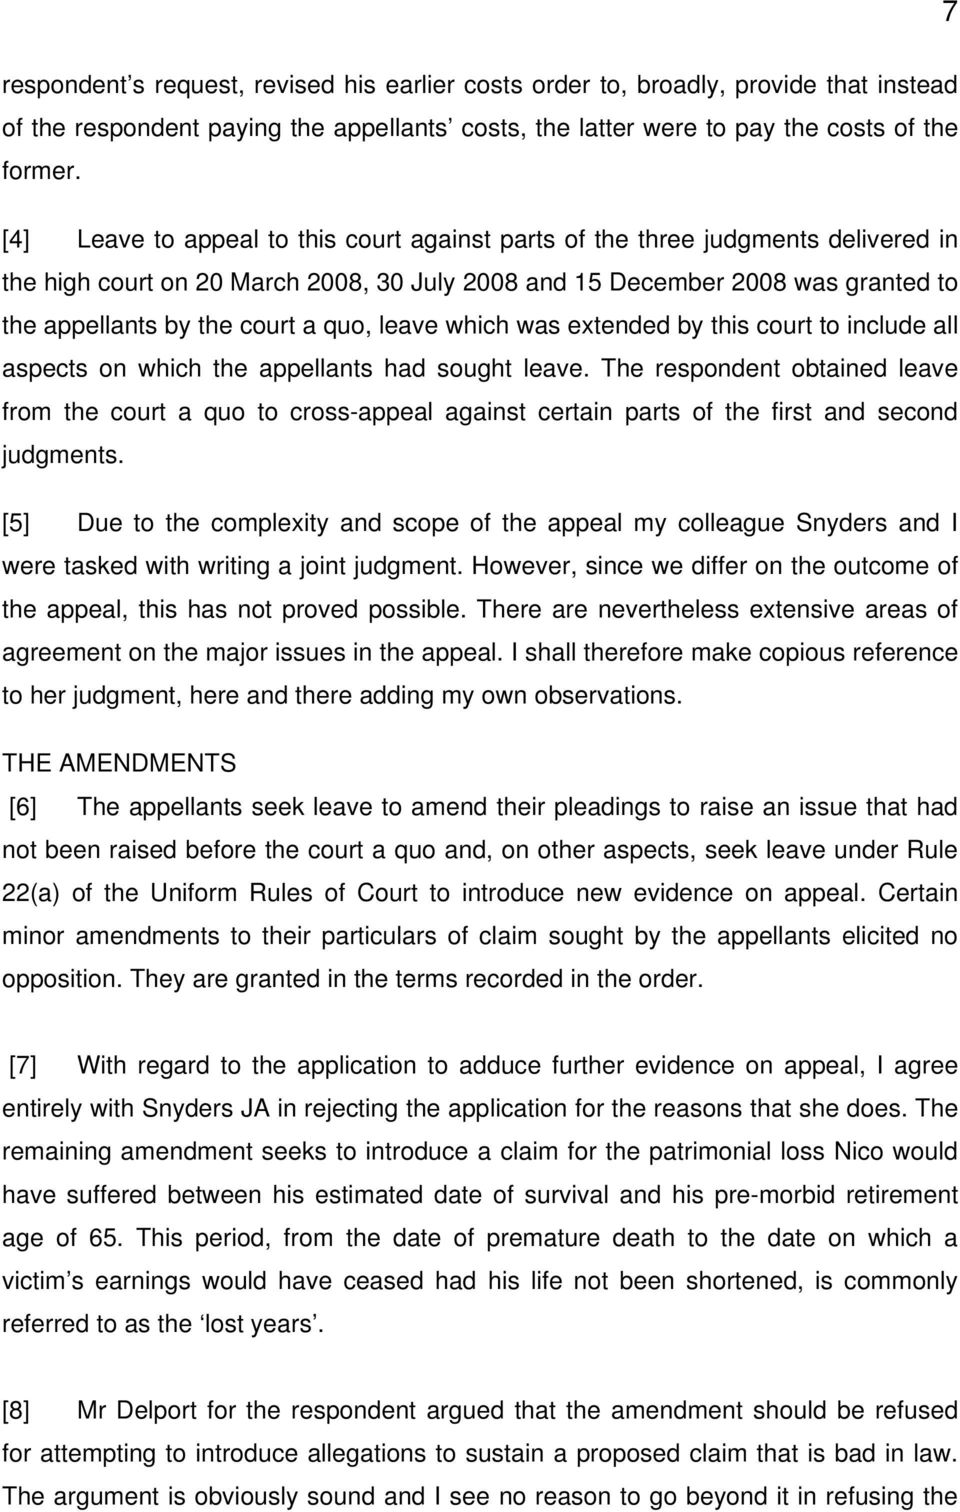 quo, leave which was extended by this court to include all aspects on which the appellants had sought leave.